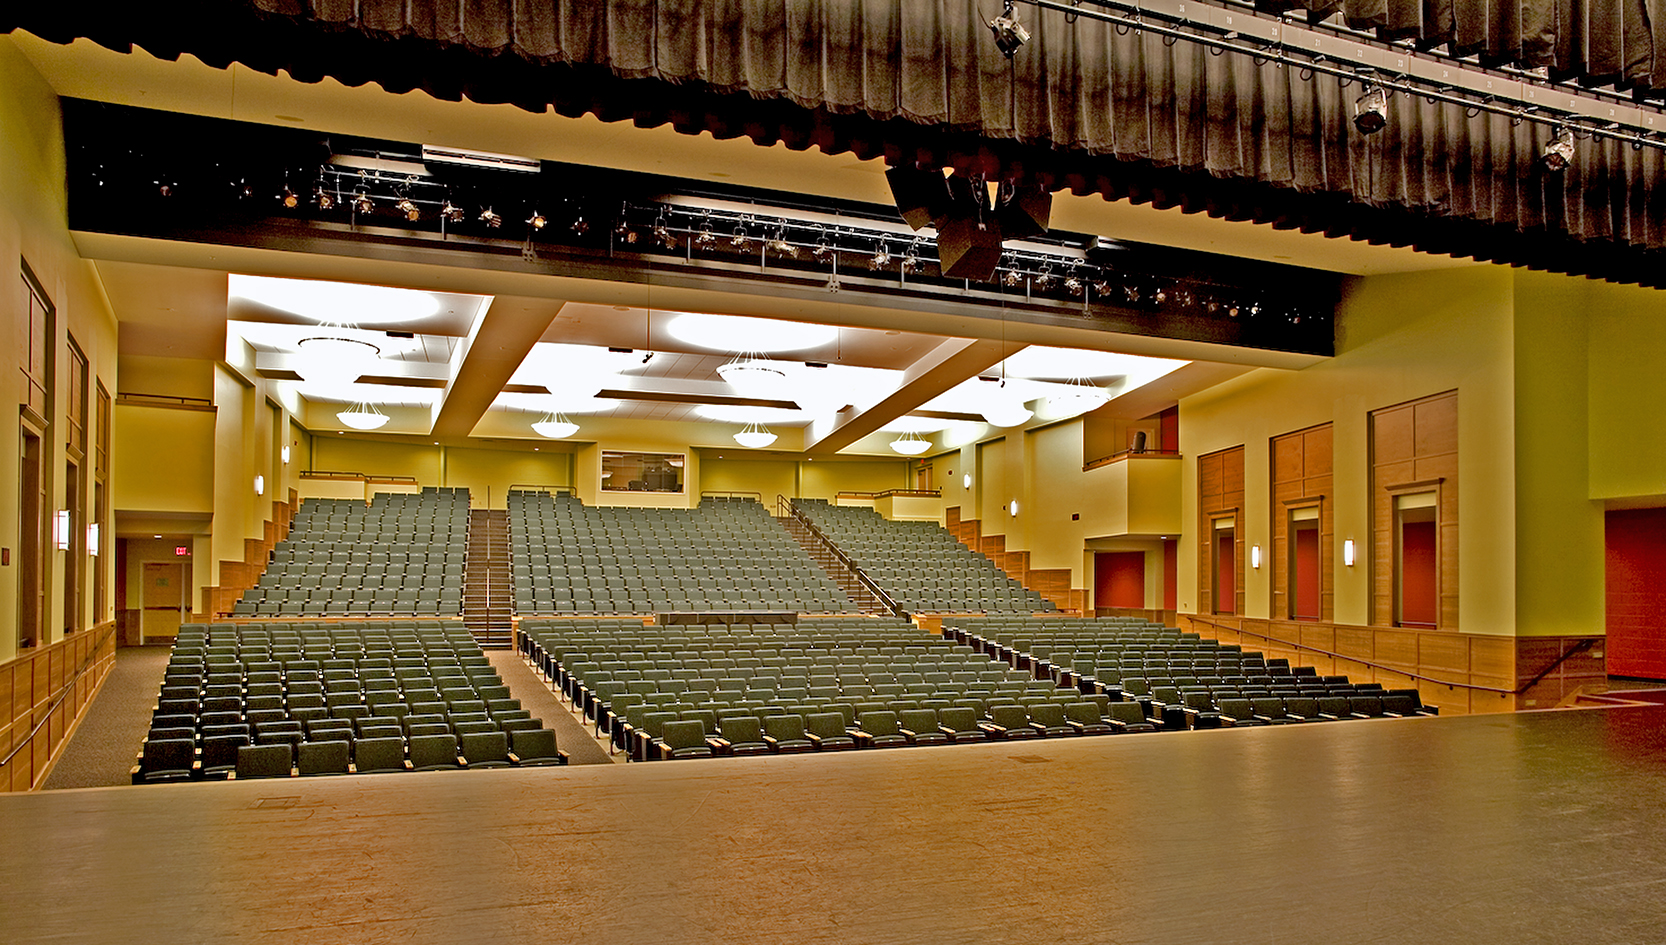 Cony's William and Elsie Viles Auditorium seats 950, with a sound/light booth in the back and a public lobby that doubles as an art gallery.